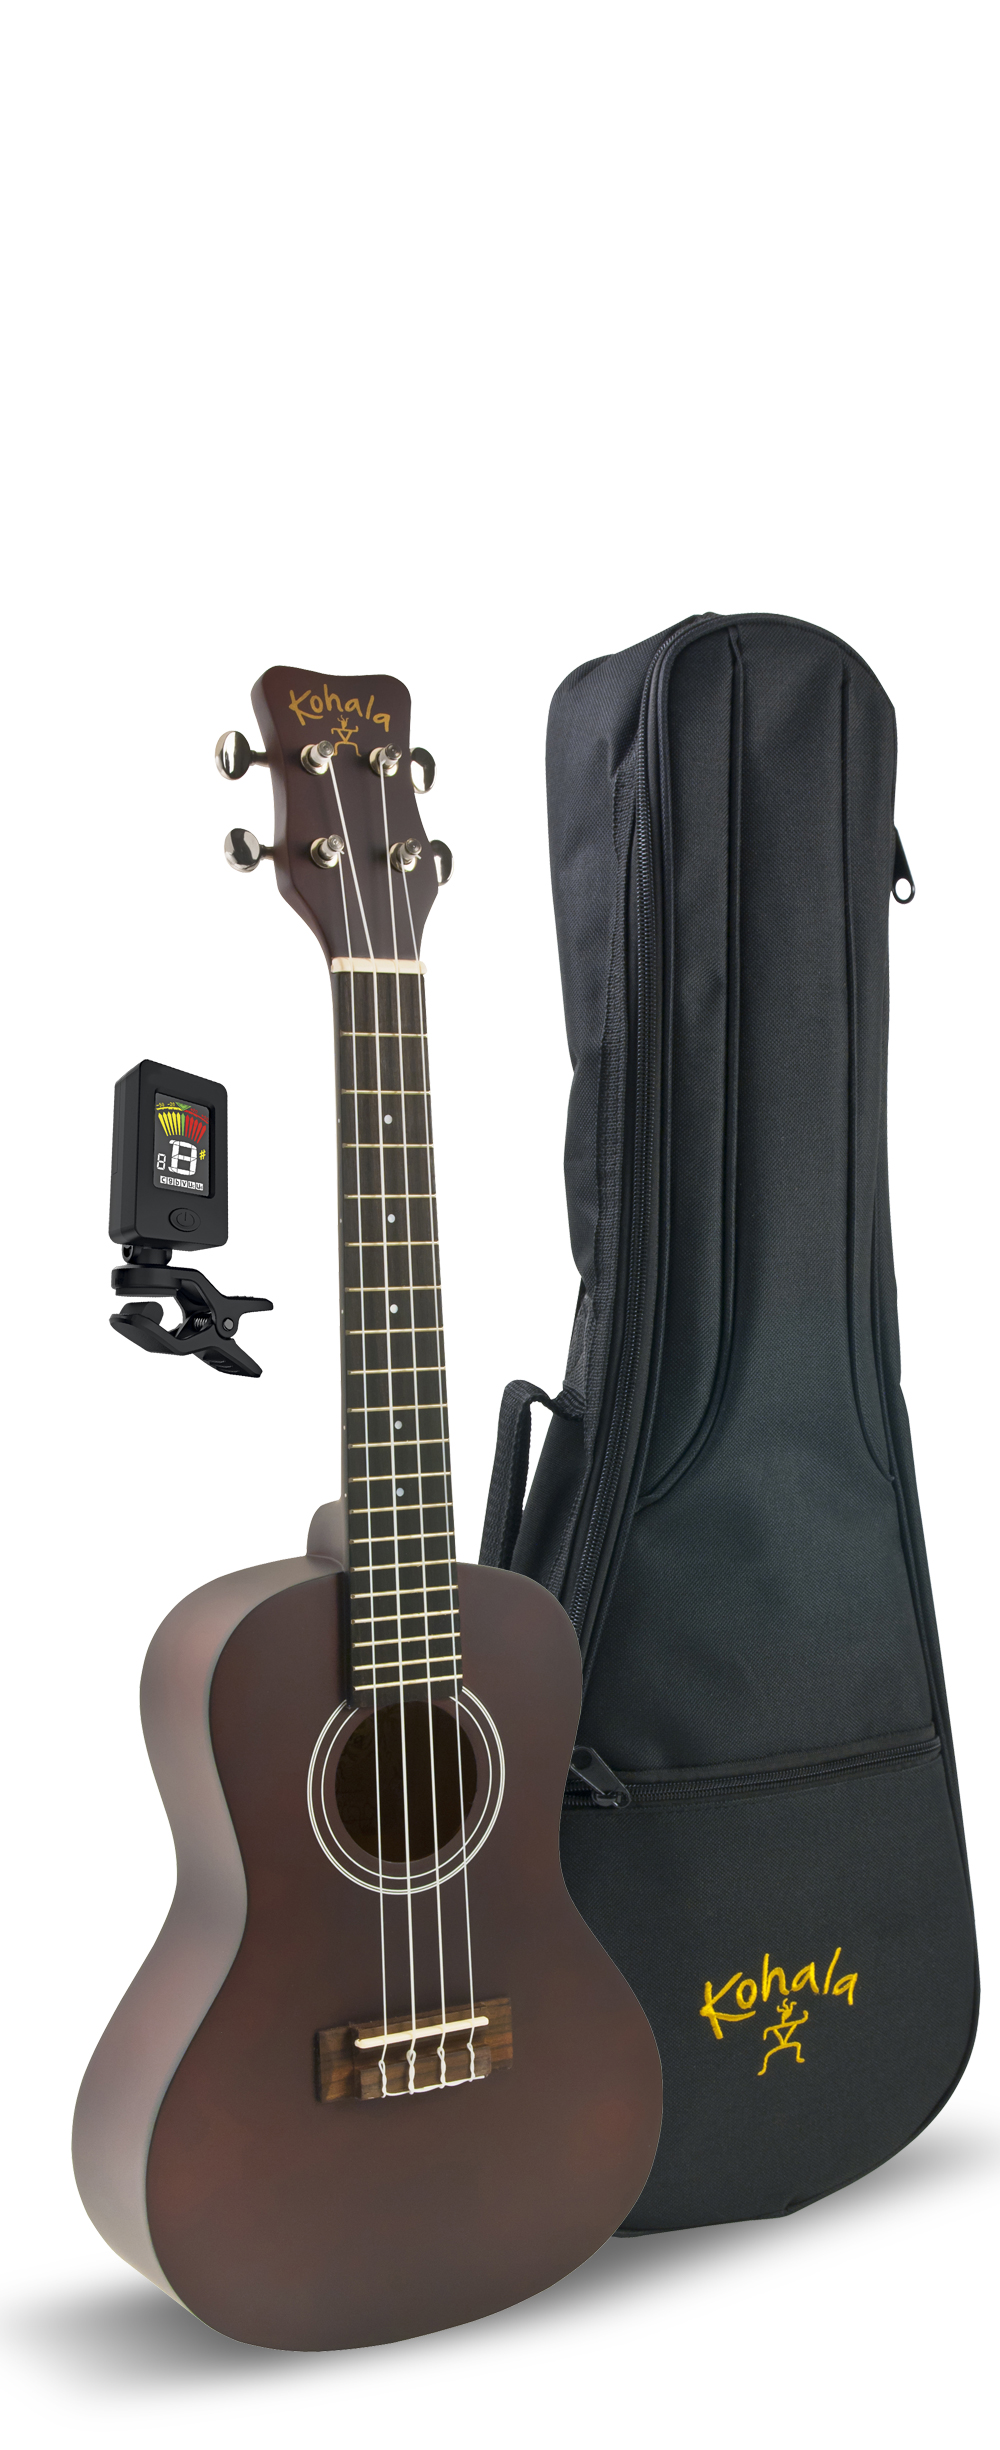 Kohala KPP-C Kohala Concert Player's Pack with Uke, Bag, Tuner